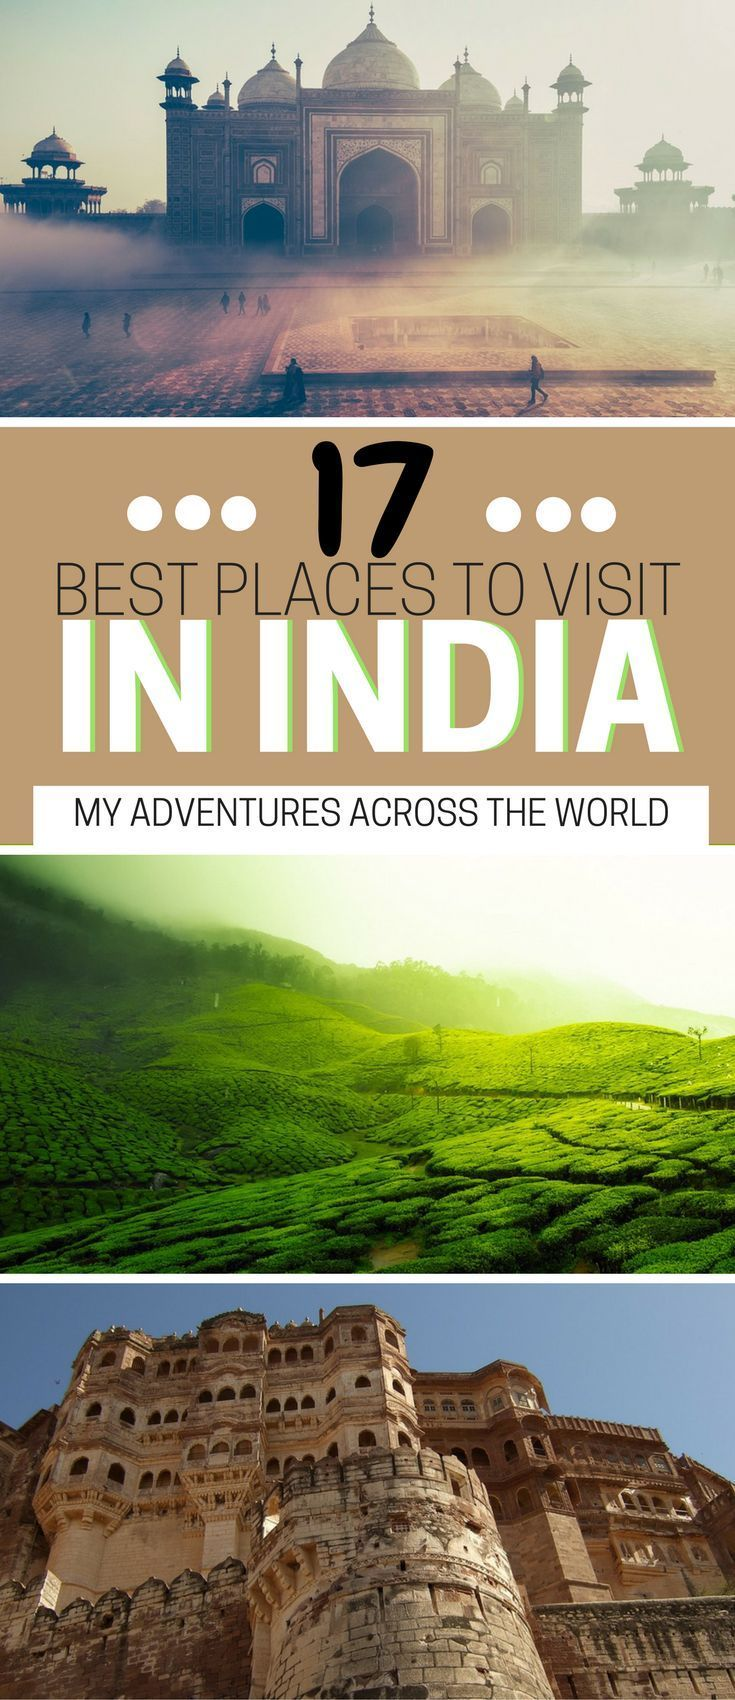 The Best Places To Visit In India An Extensive List Of Inida Best Cities Historical Sites Natural W Cool Places To Visit Places To Visit India Bucket List